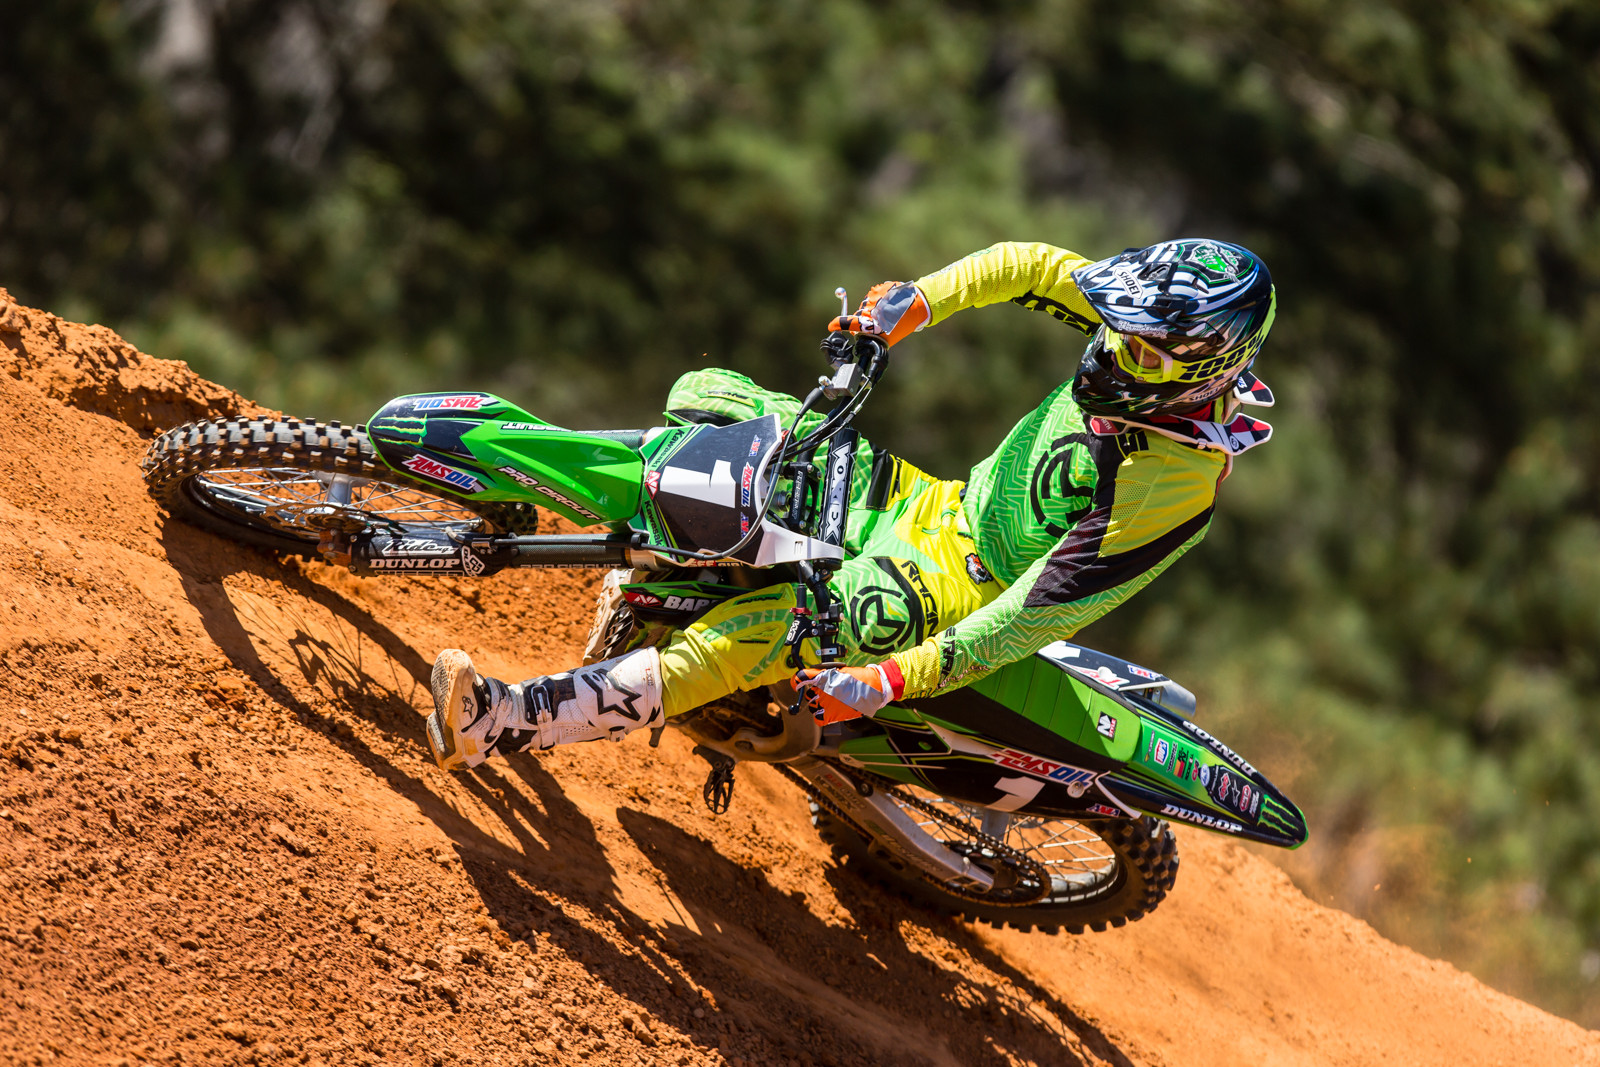 Gavin Faith - Photo Gallery: The Nest, Goat Farm, and MTF - Motocross Pictures - Vital MX